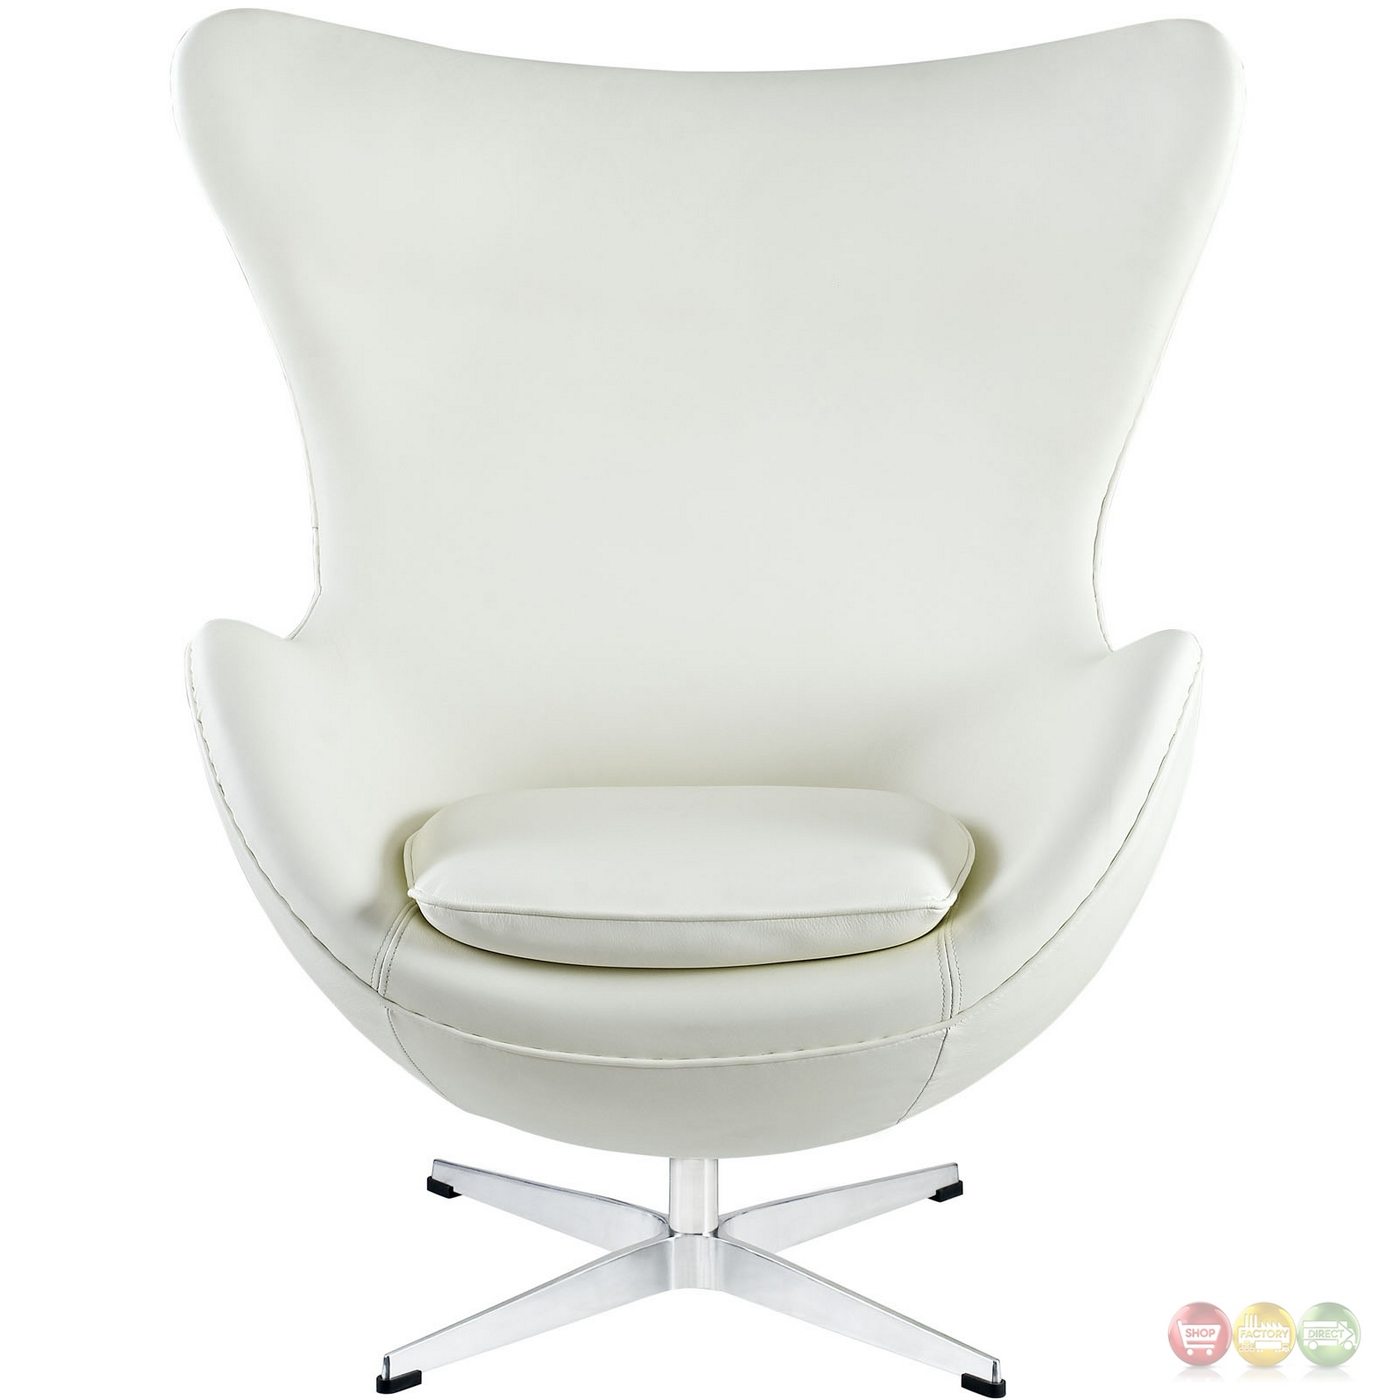 Glove mid century modern italian leather lounge chair white for Mid century modern leather chairs